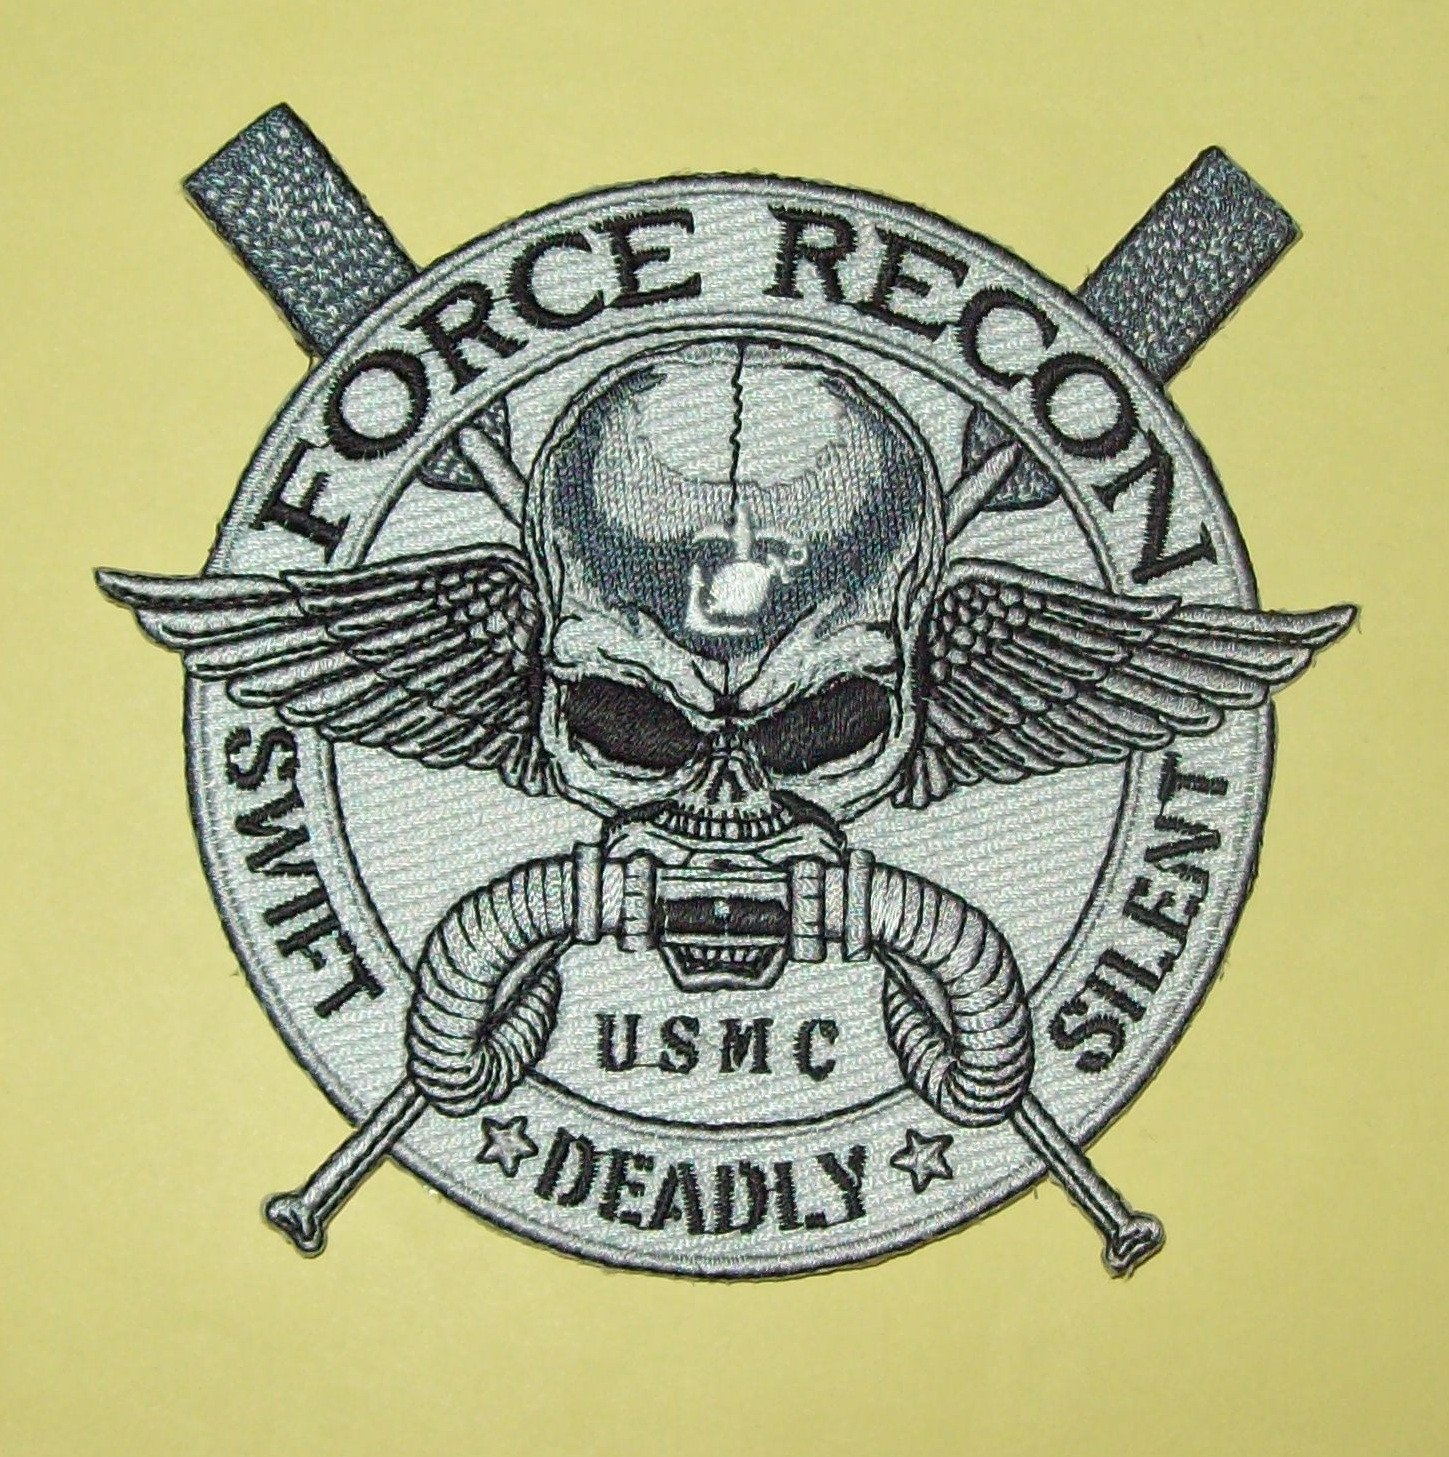 Usmc Logo Wallpaper: Marine Corps Force Recon Wallpaper